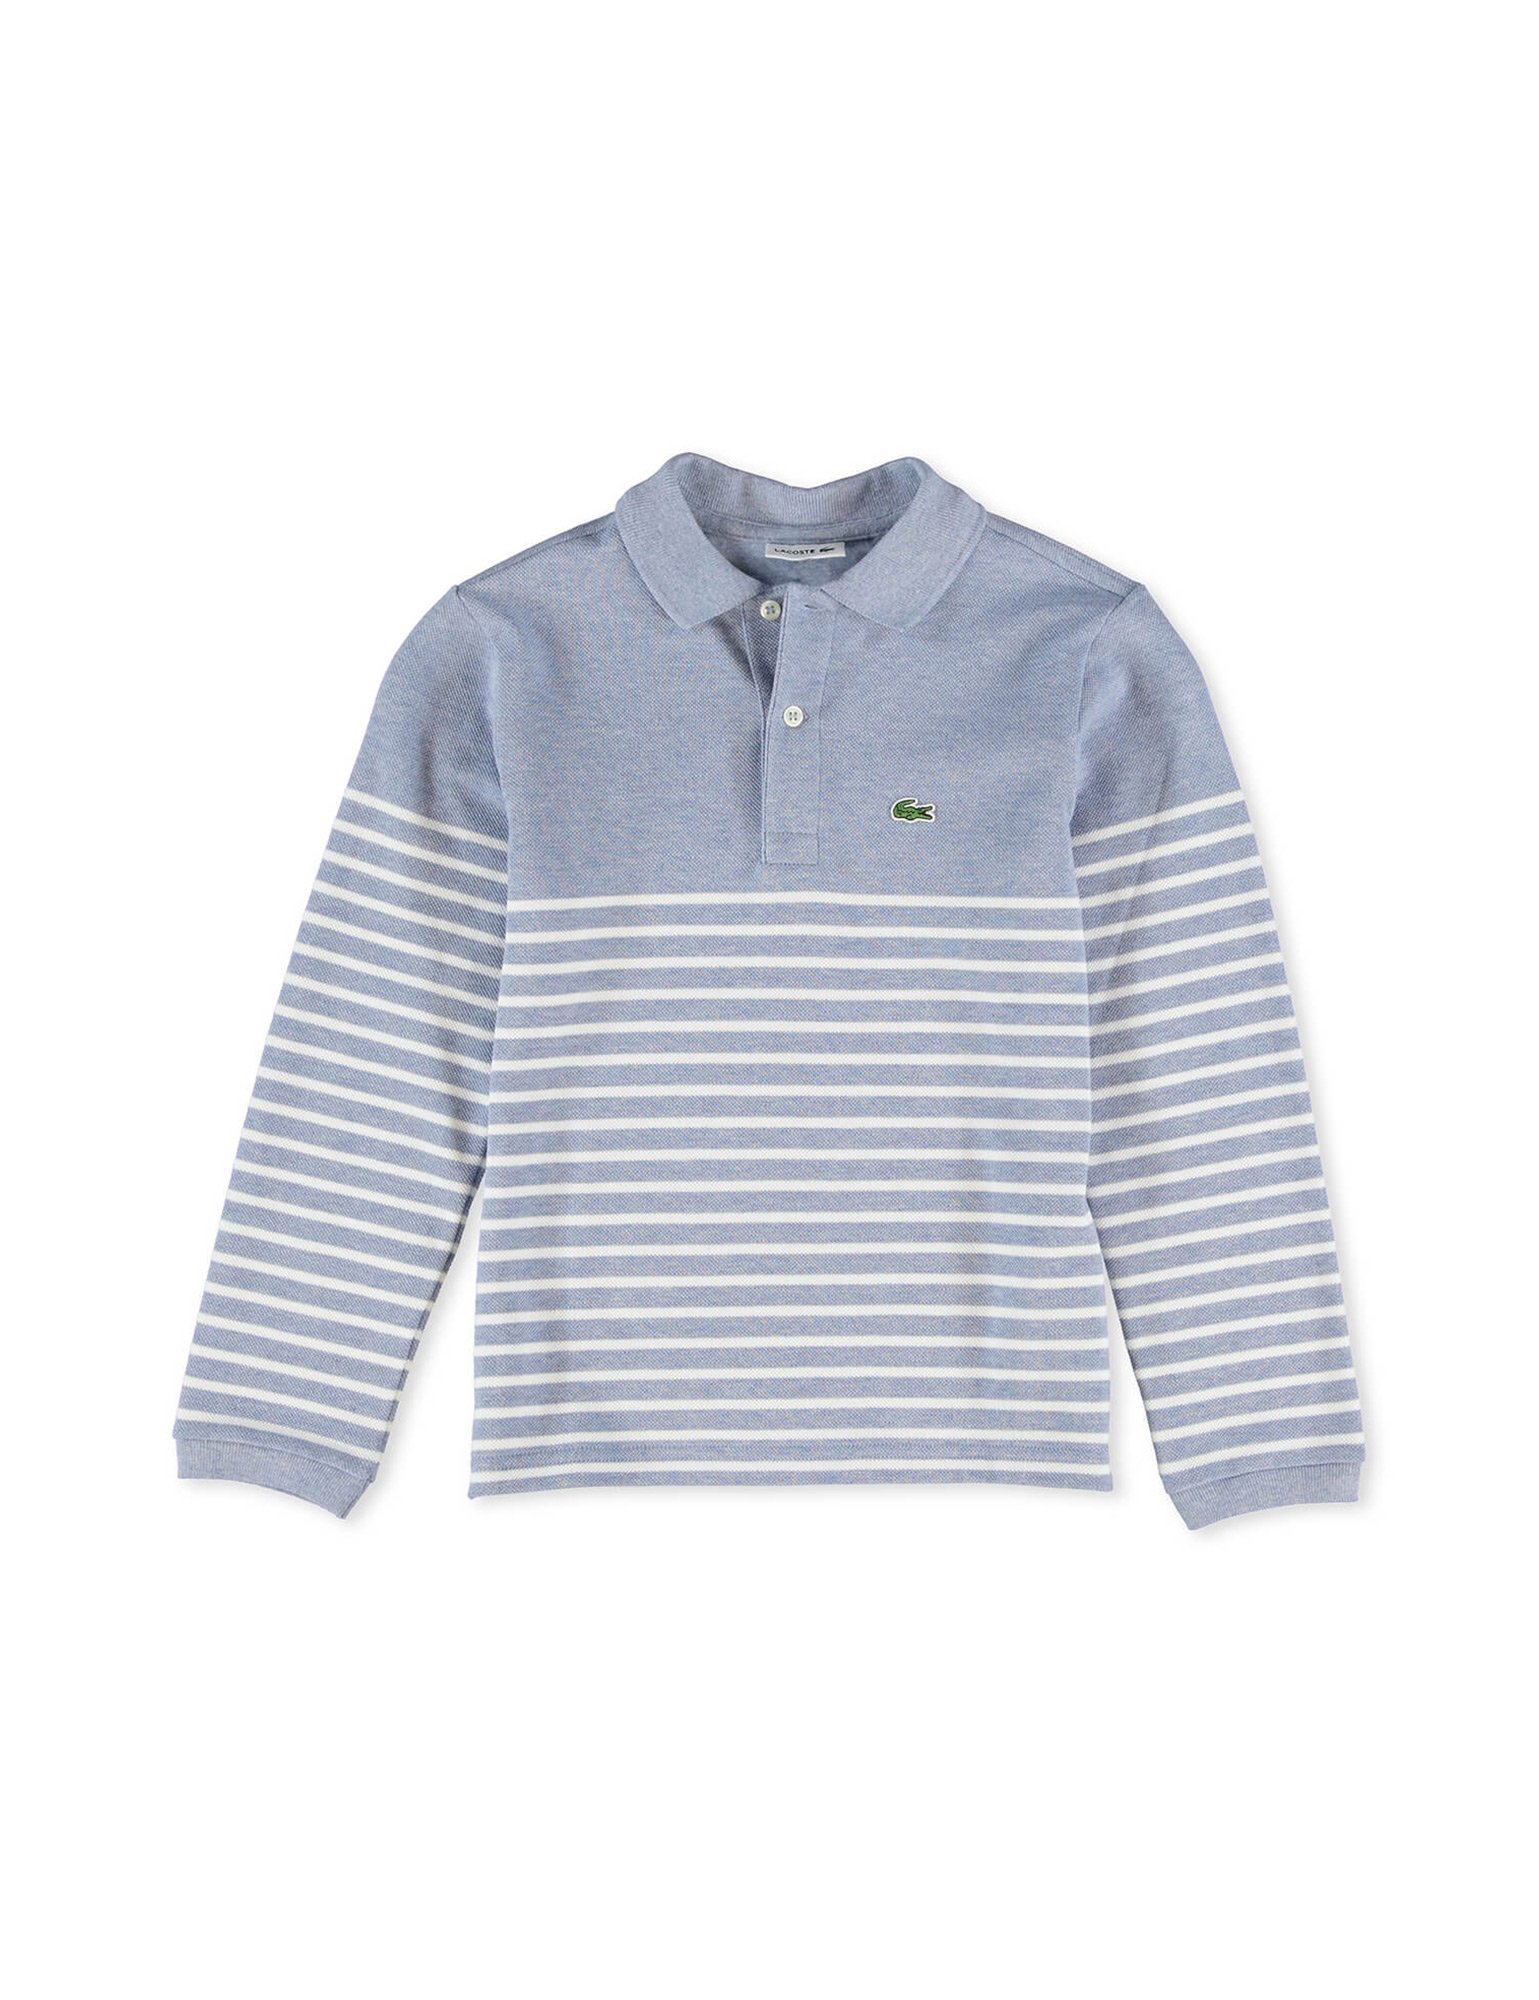 Lacoste Boy's Grey Striped Long Sleeve Polo in Size 1 Years (74 cm) Grey by Lacoste